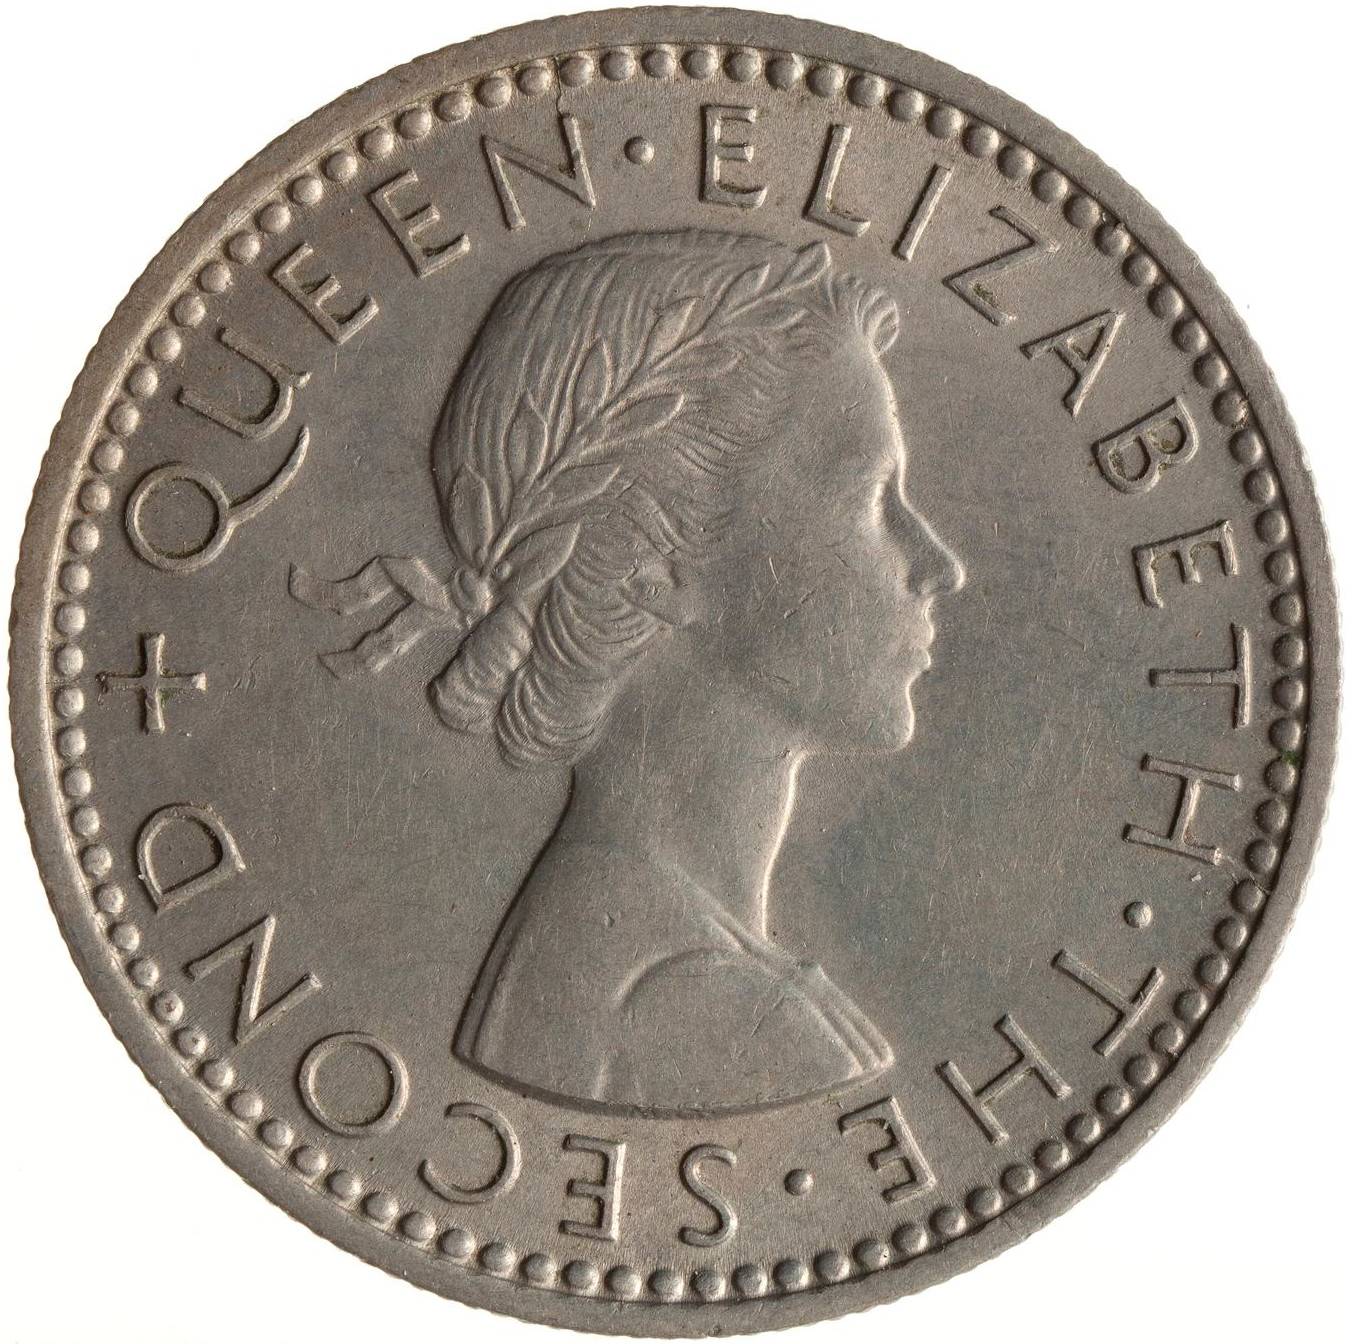 Sixpence 1958: Photo Coin - 6 Pence, New Zealand, 1958